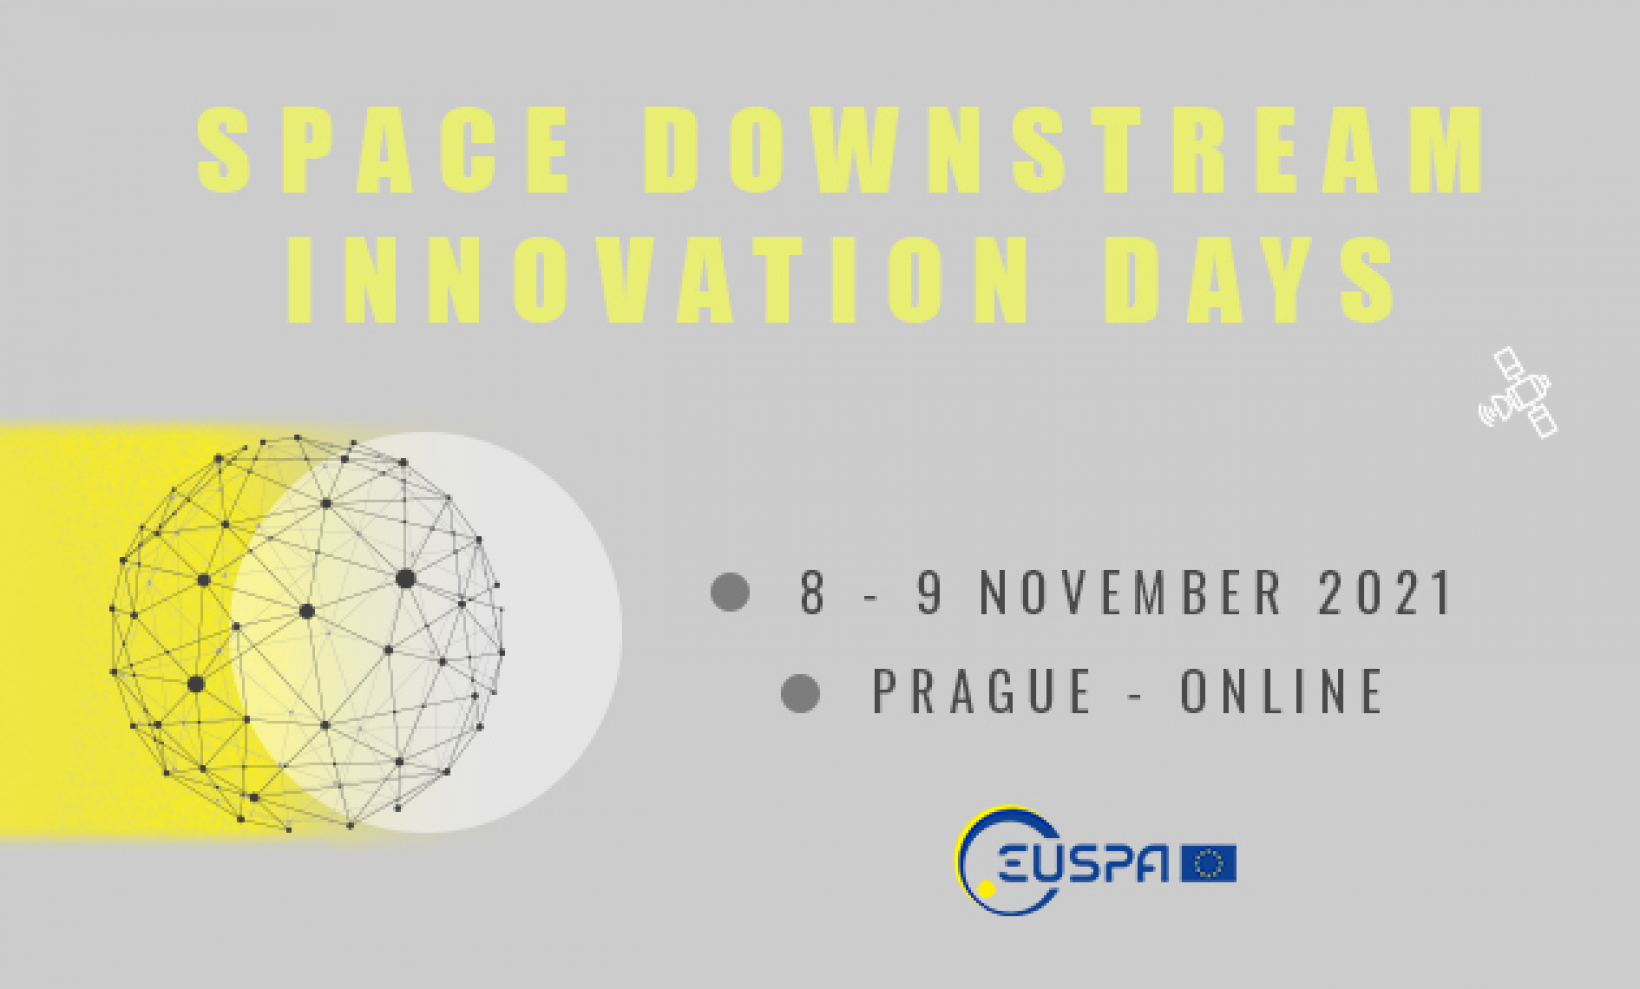 EUSPA Space Downstream Innovation Days will take place in a hybrid format on 8-9 November